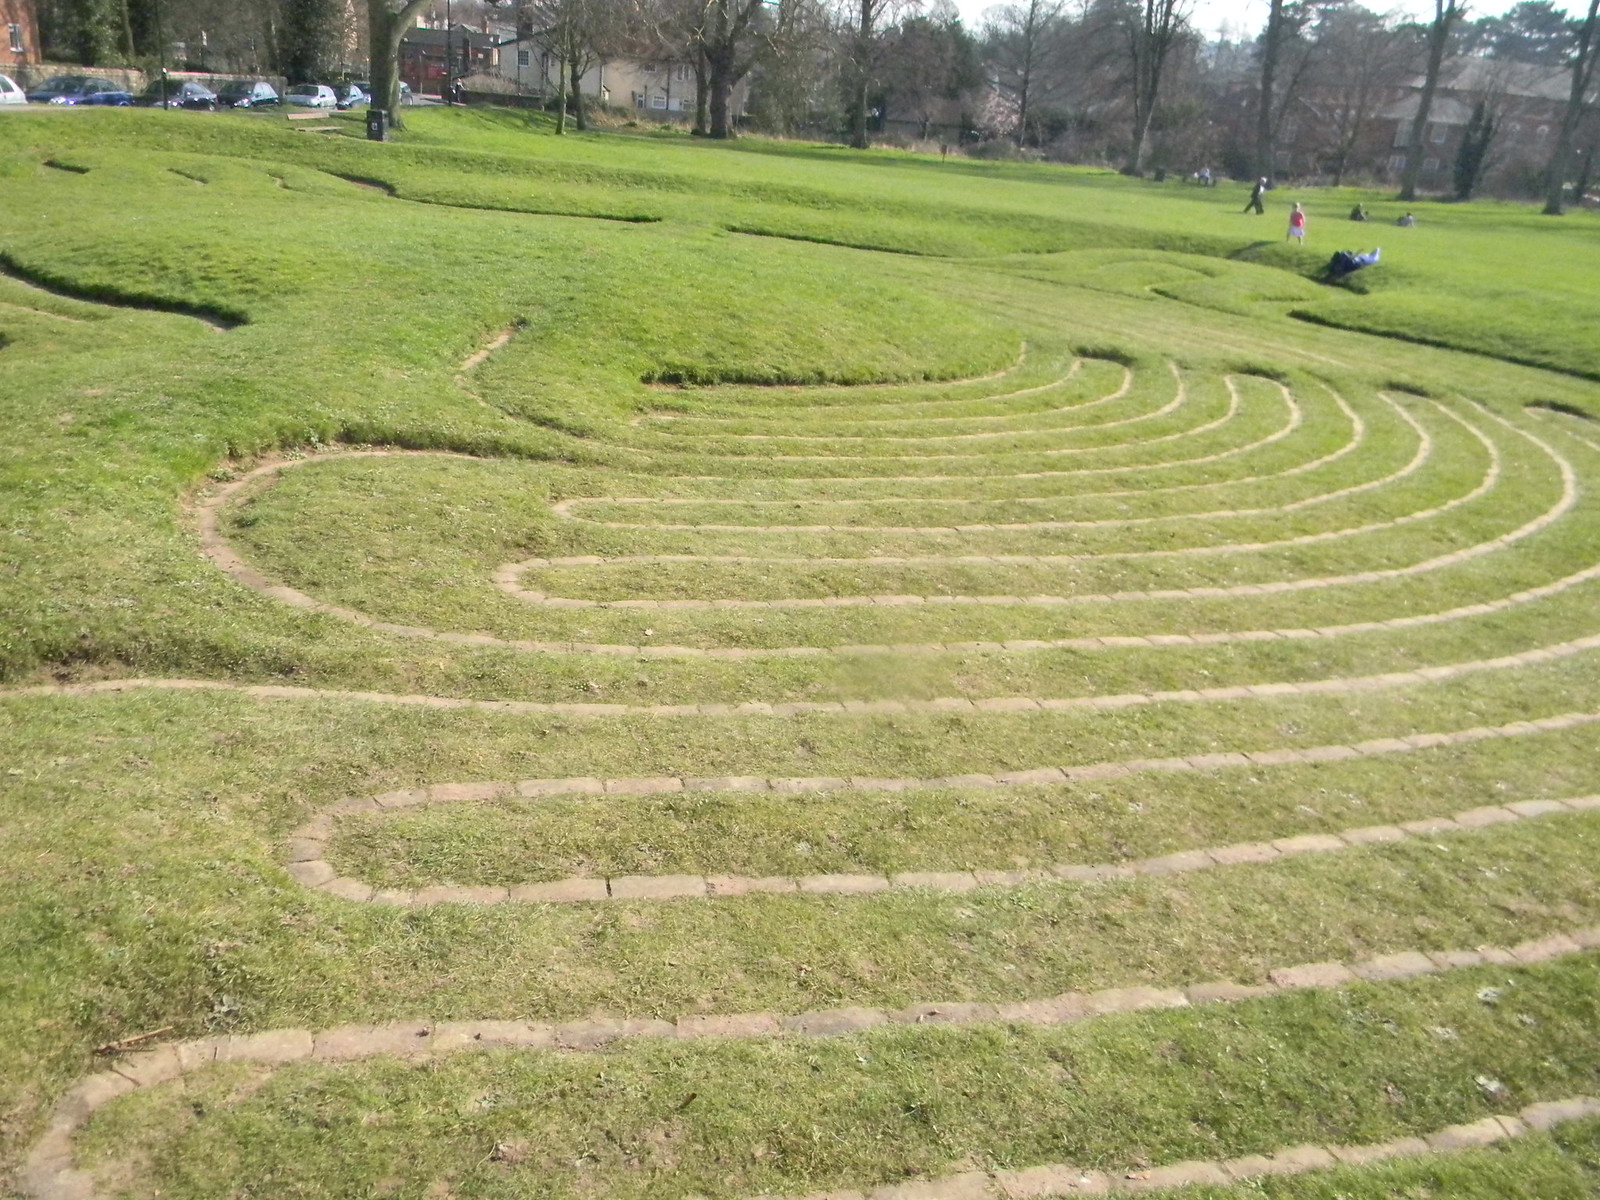 Turf maze, Saffron Walden Great Chesterford to Newport